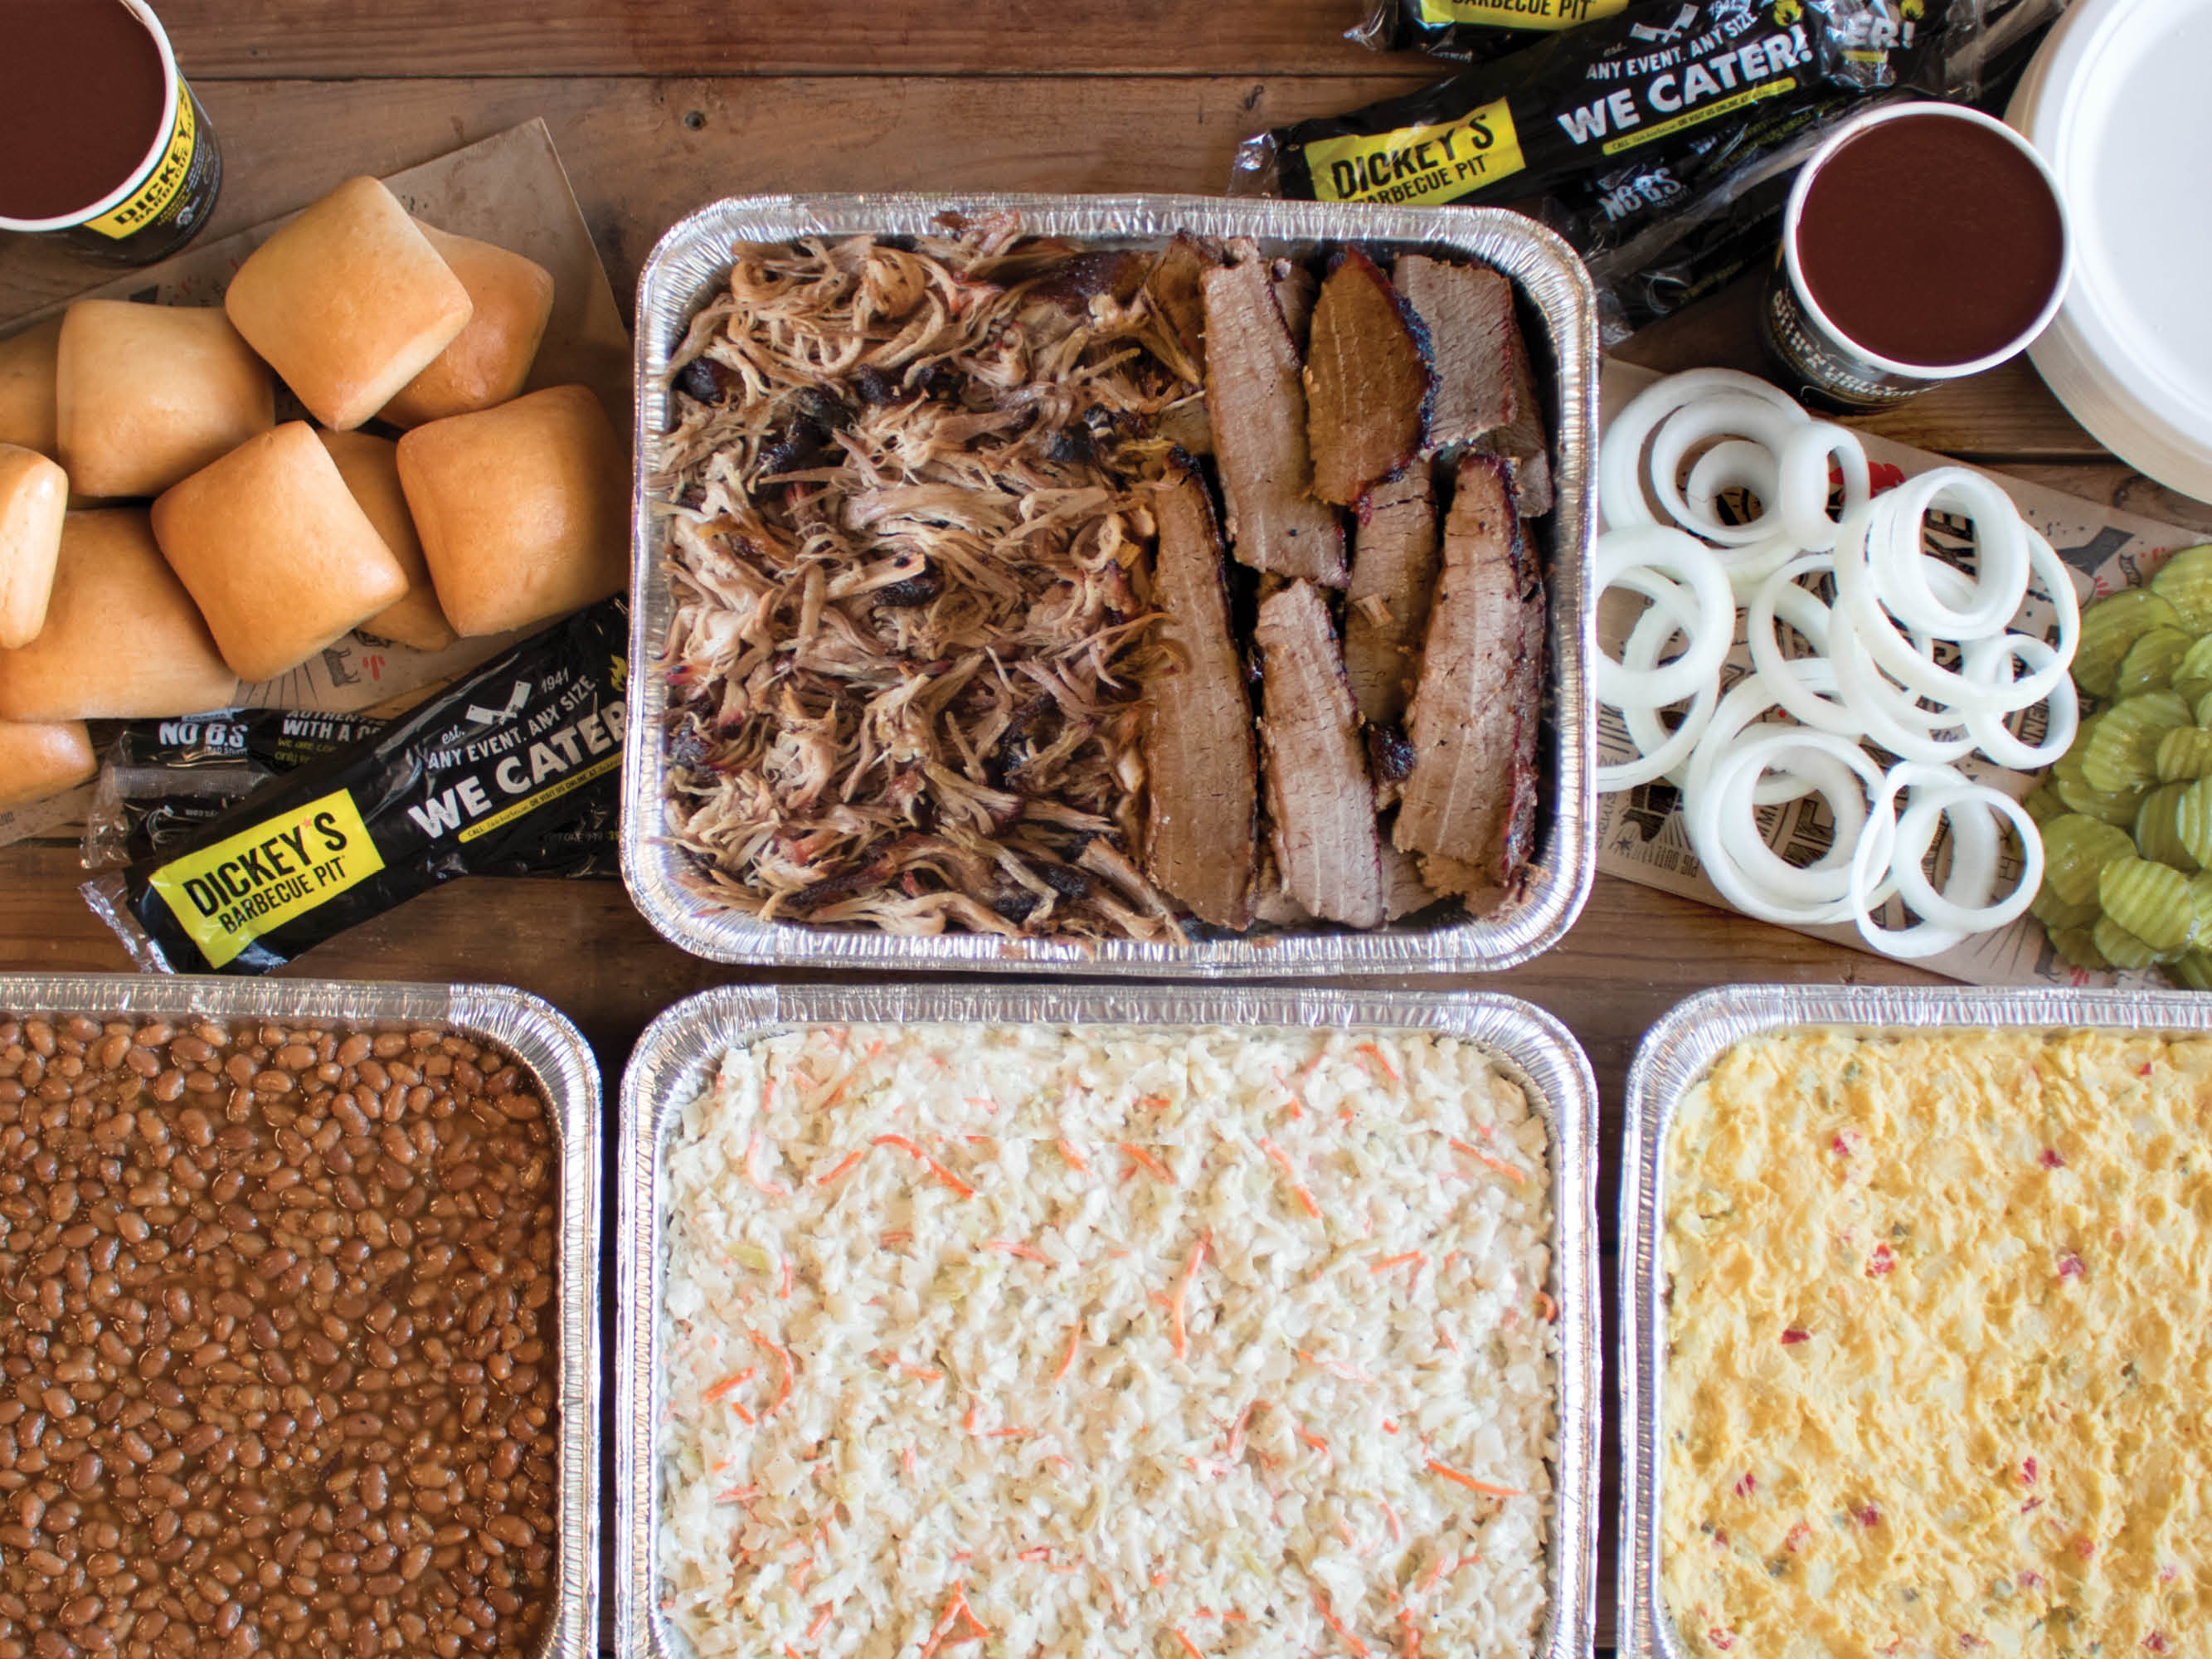 Living a Full and Fit Life: Football Season is Here and Dickey's Barbecue Pit has Meal Time Covered with their New Tailgate Party Pack!